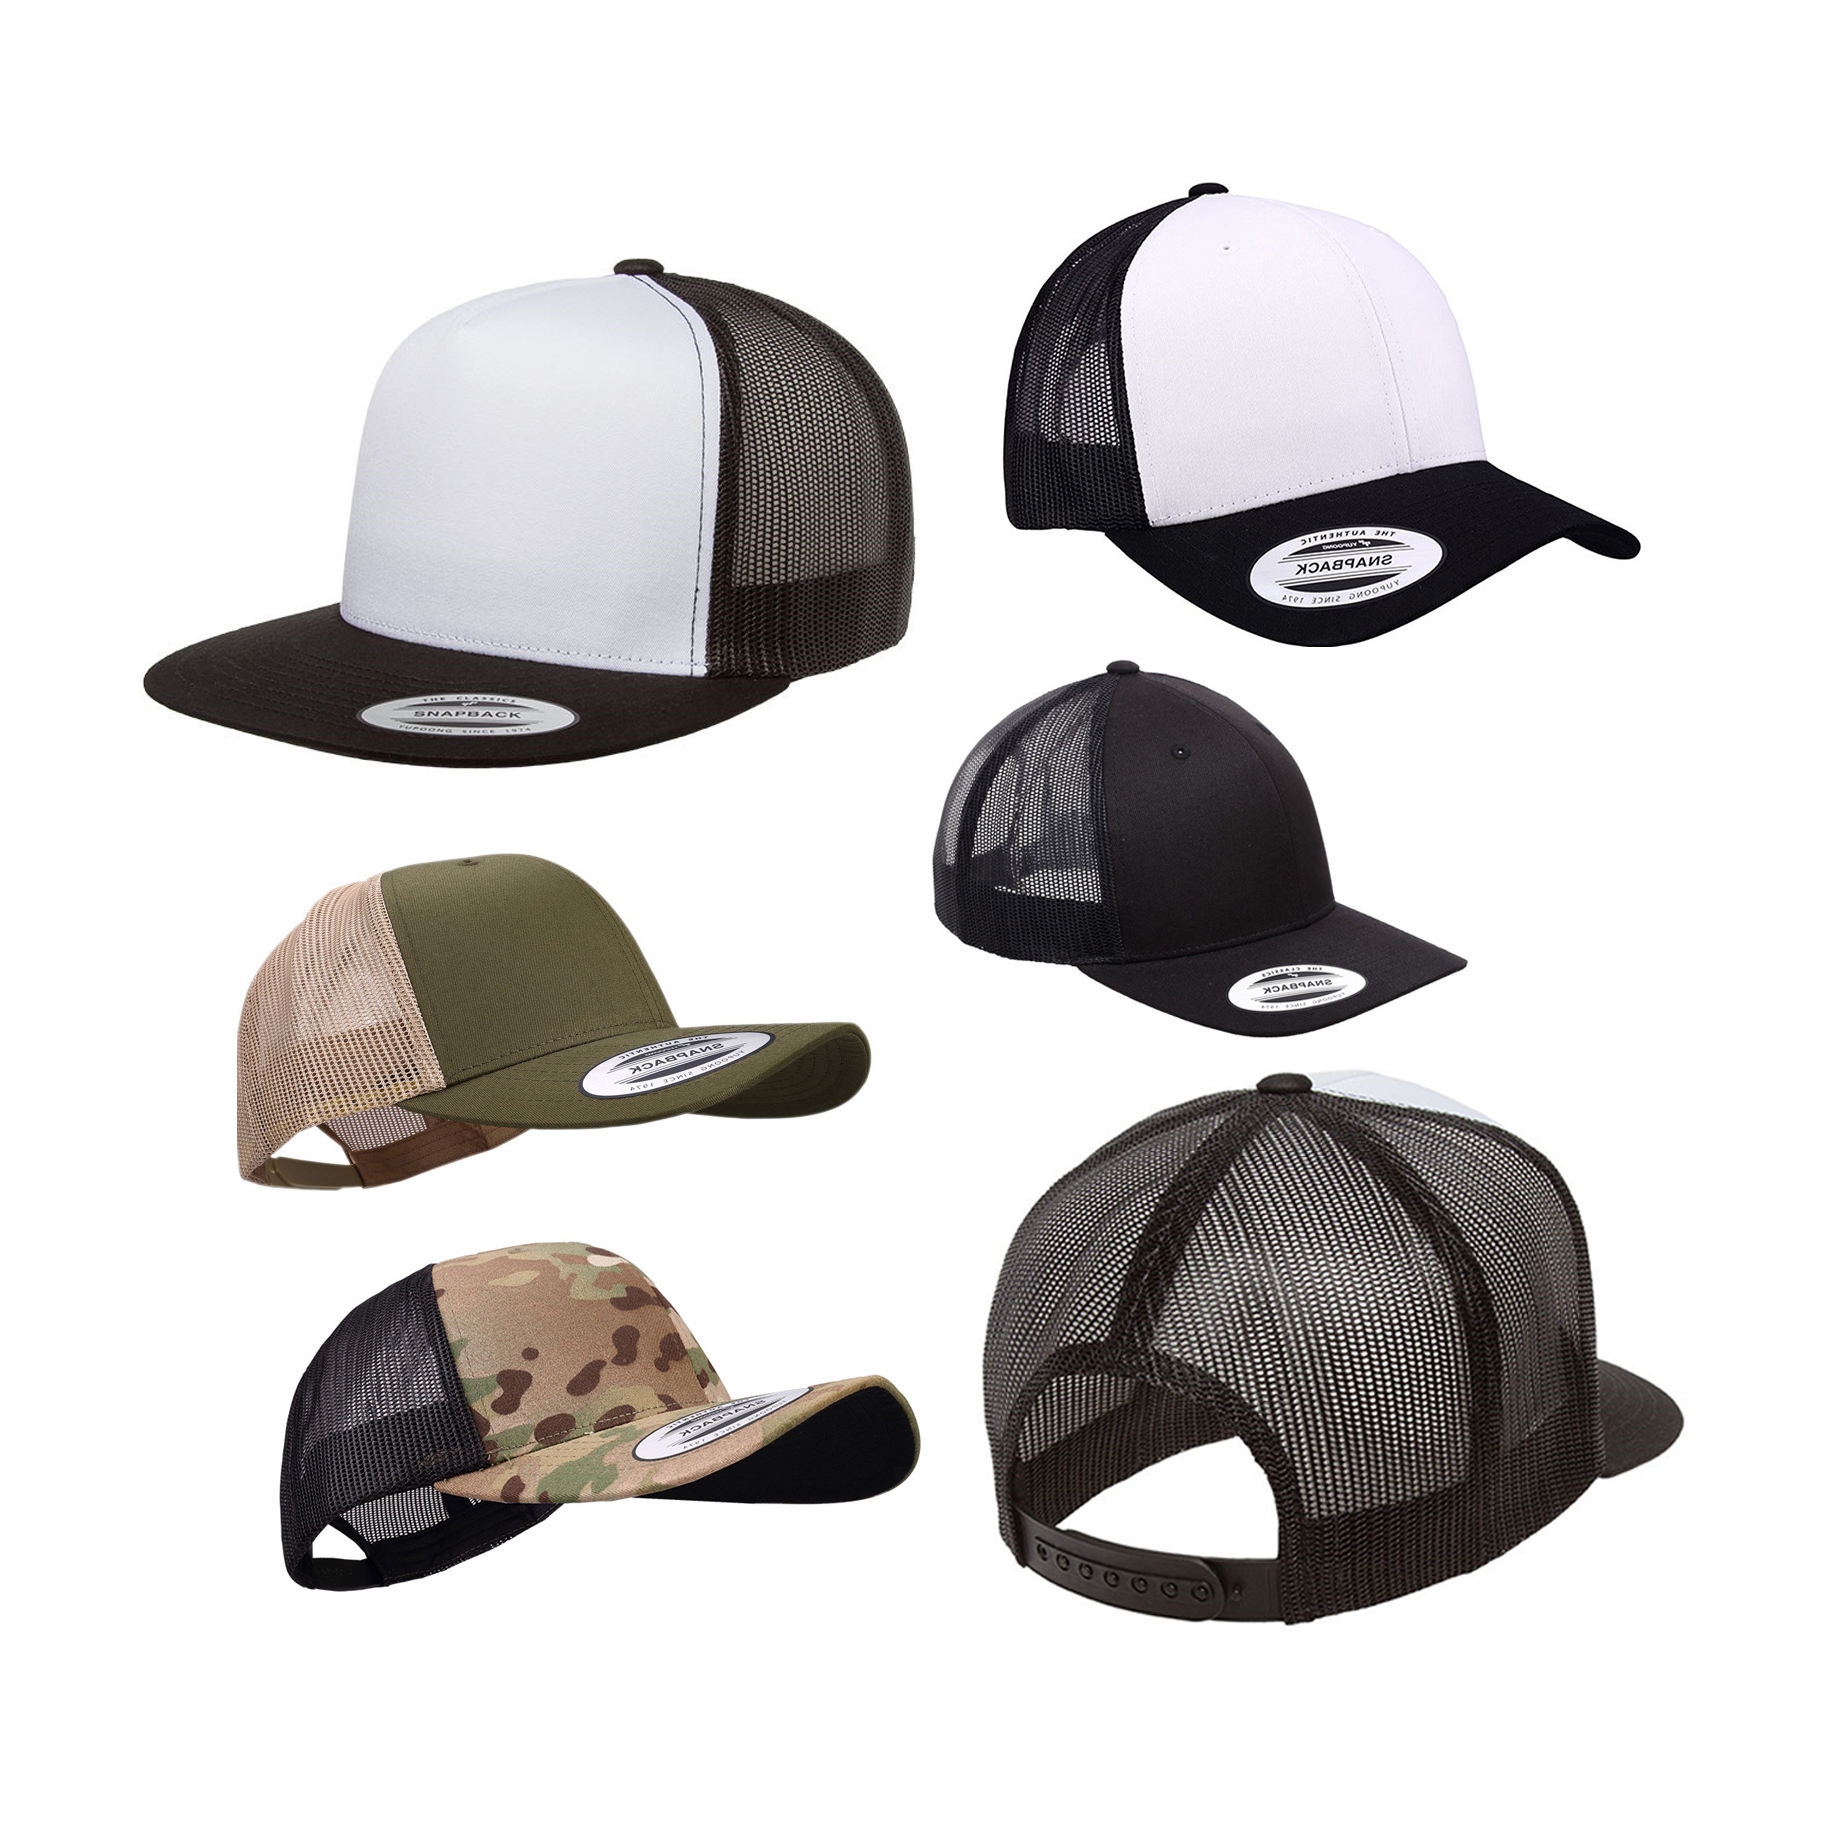 Outdoor Sports Custom Your Own Logo Blank Plain Classic Yupoong Style Mesh Trucker Cap Hat